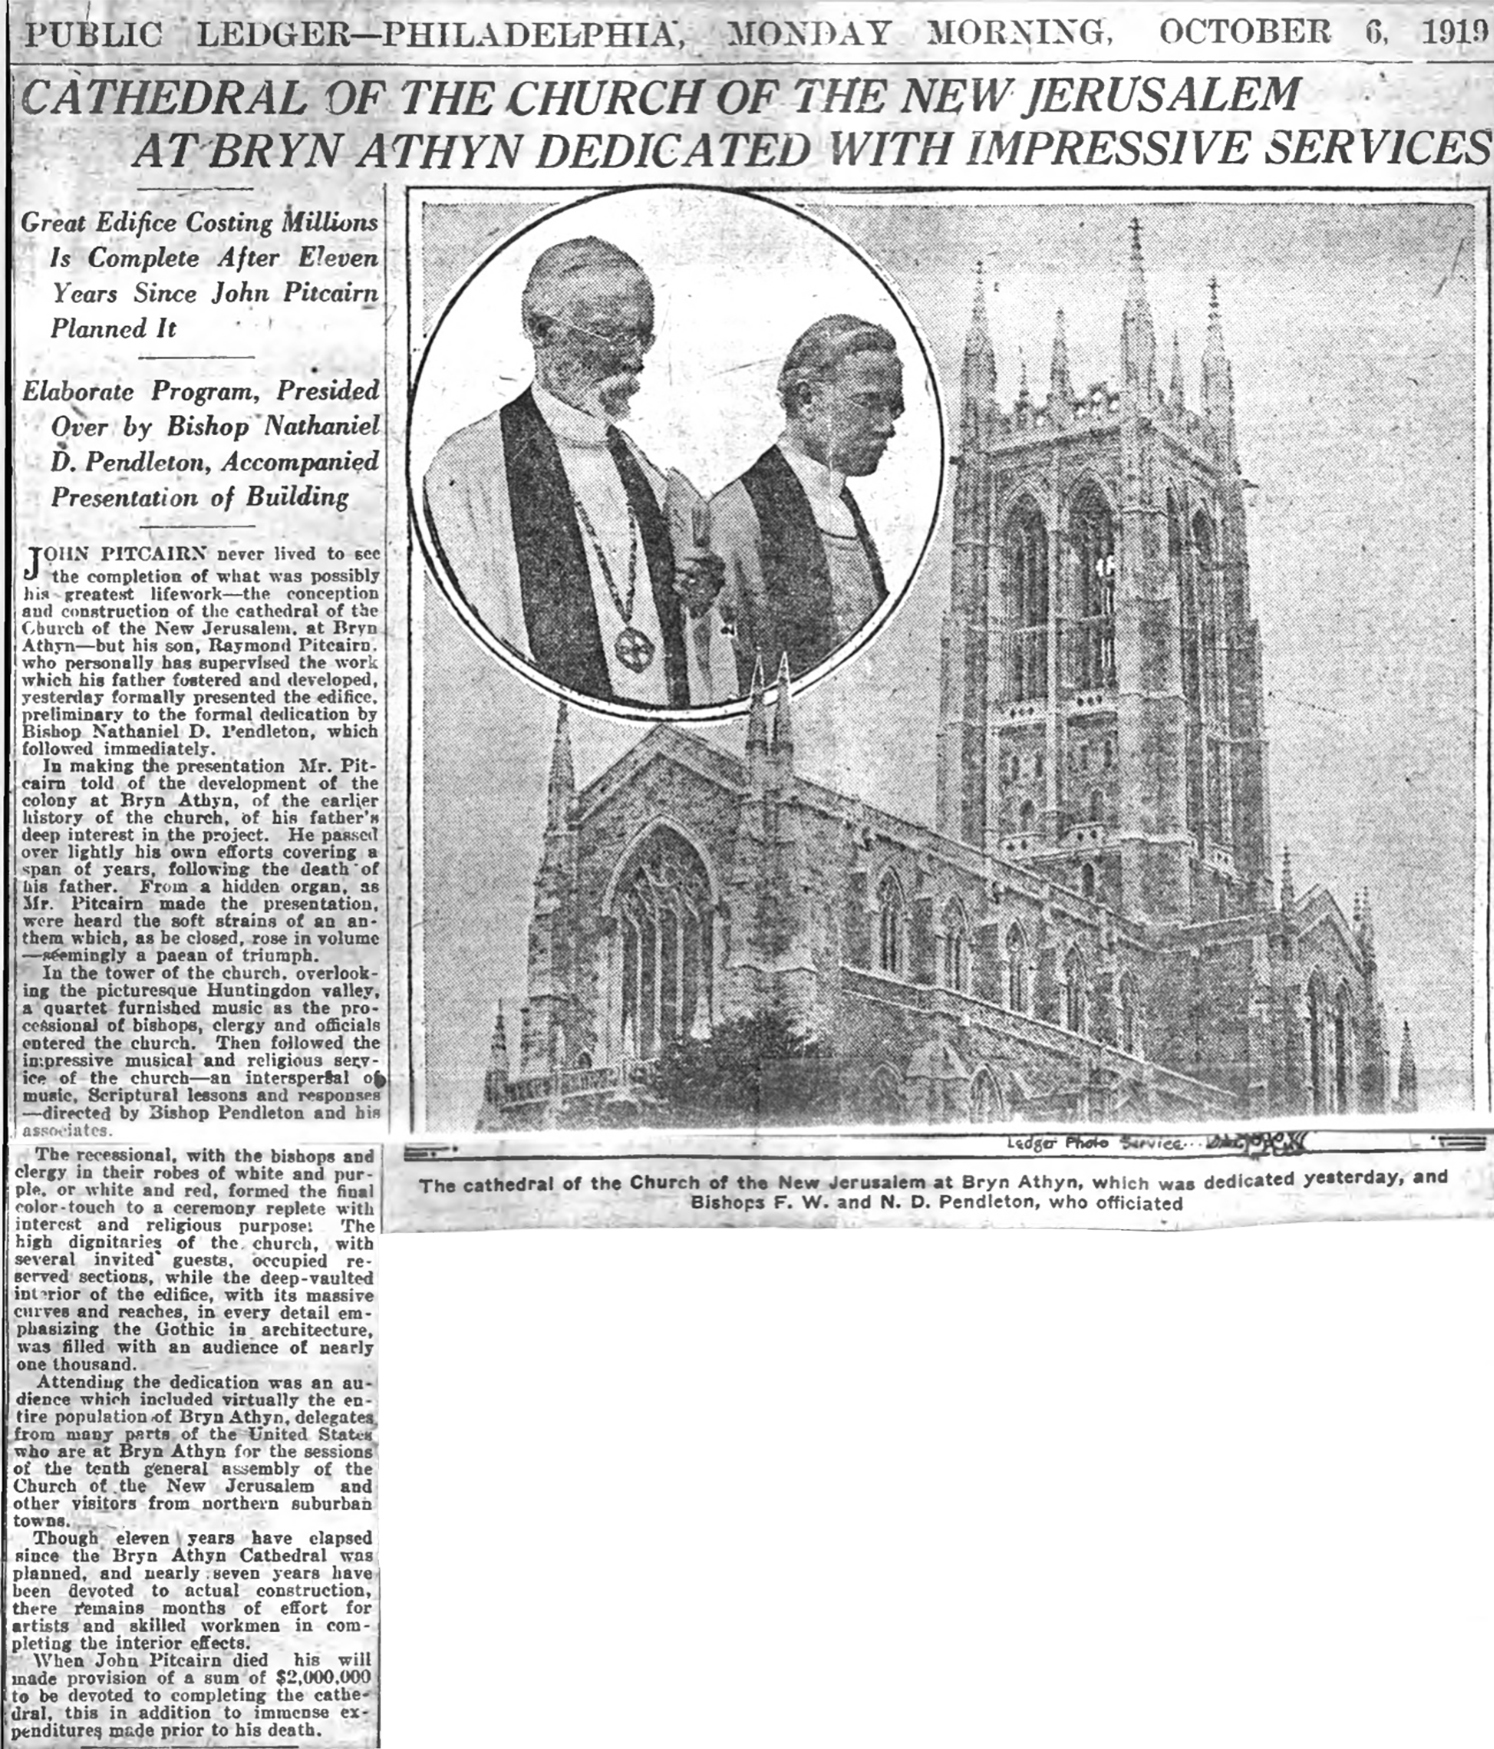 Figure 12:  Public Ledger  article from October 6, 1919, featuring a photograph of the newly dedicated Cathedral and an inset photograph of Bishop Emeritus William F. Pendleton and Bishop Nathaniel D. Pendleton.